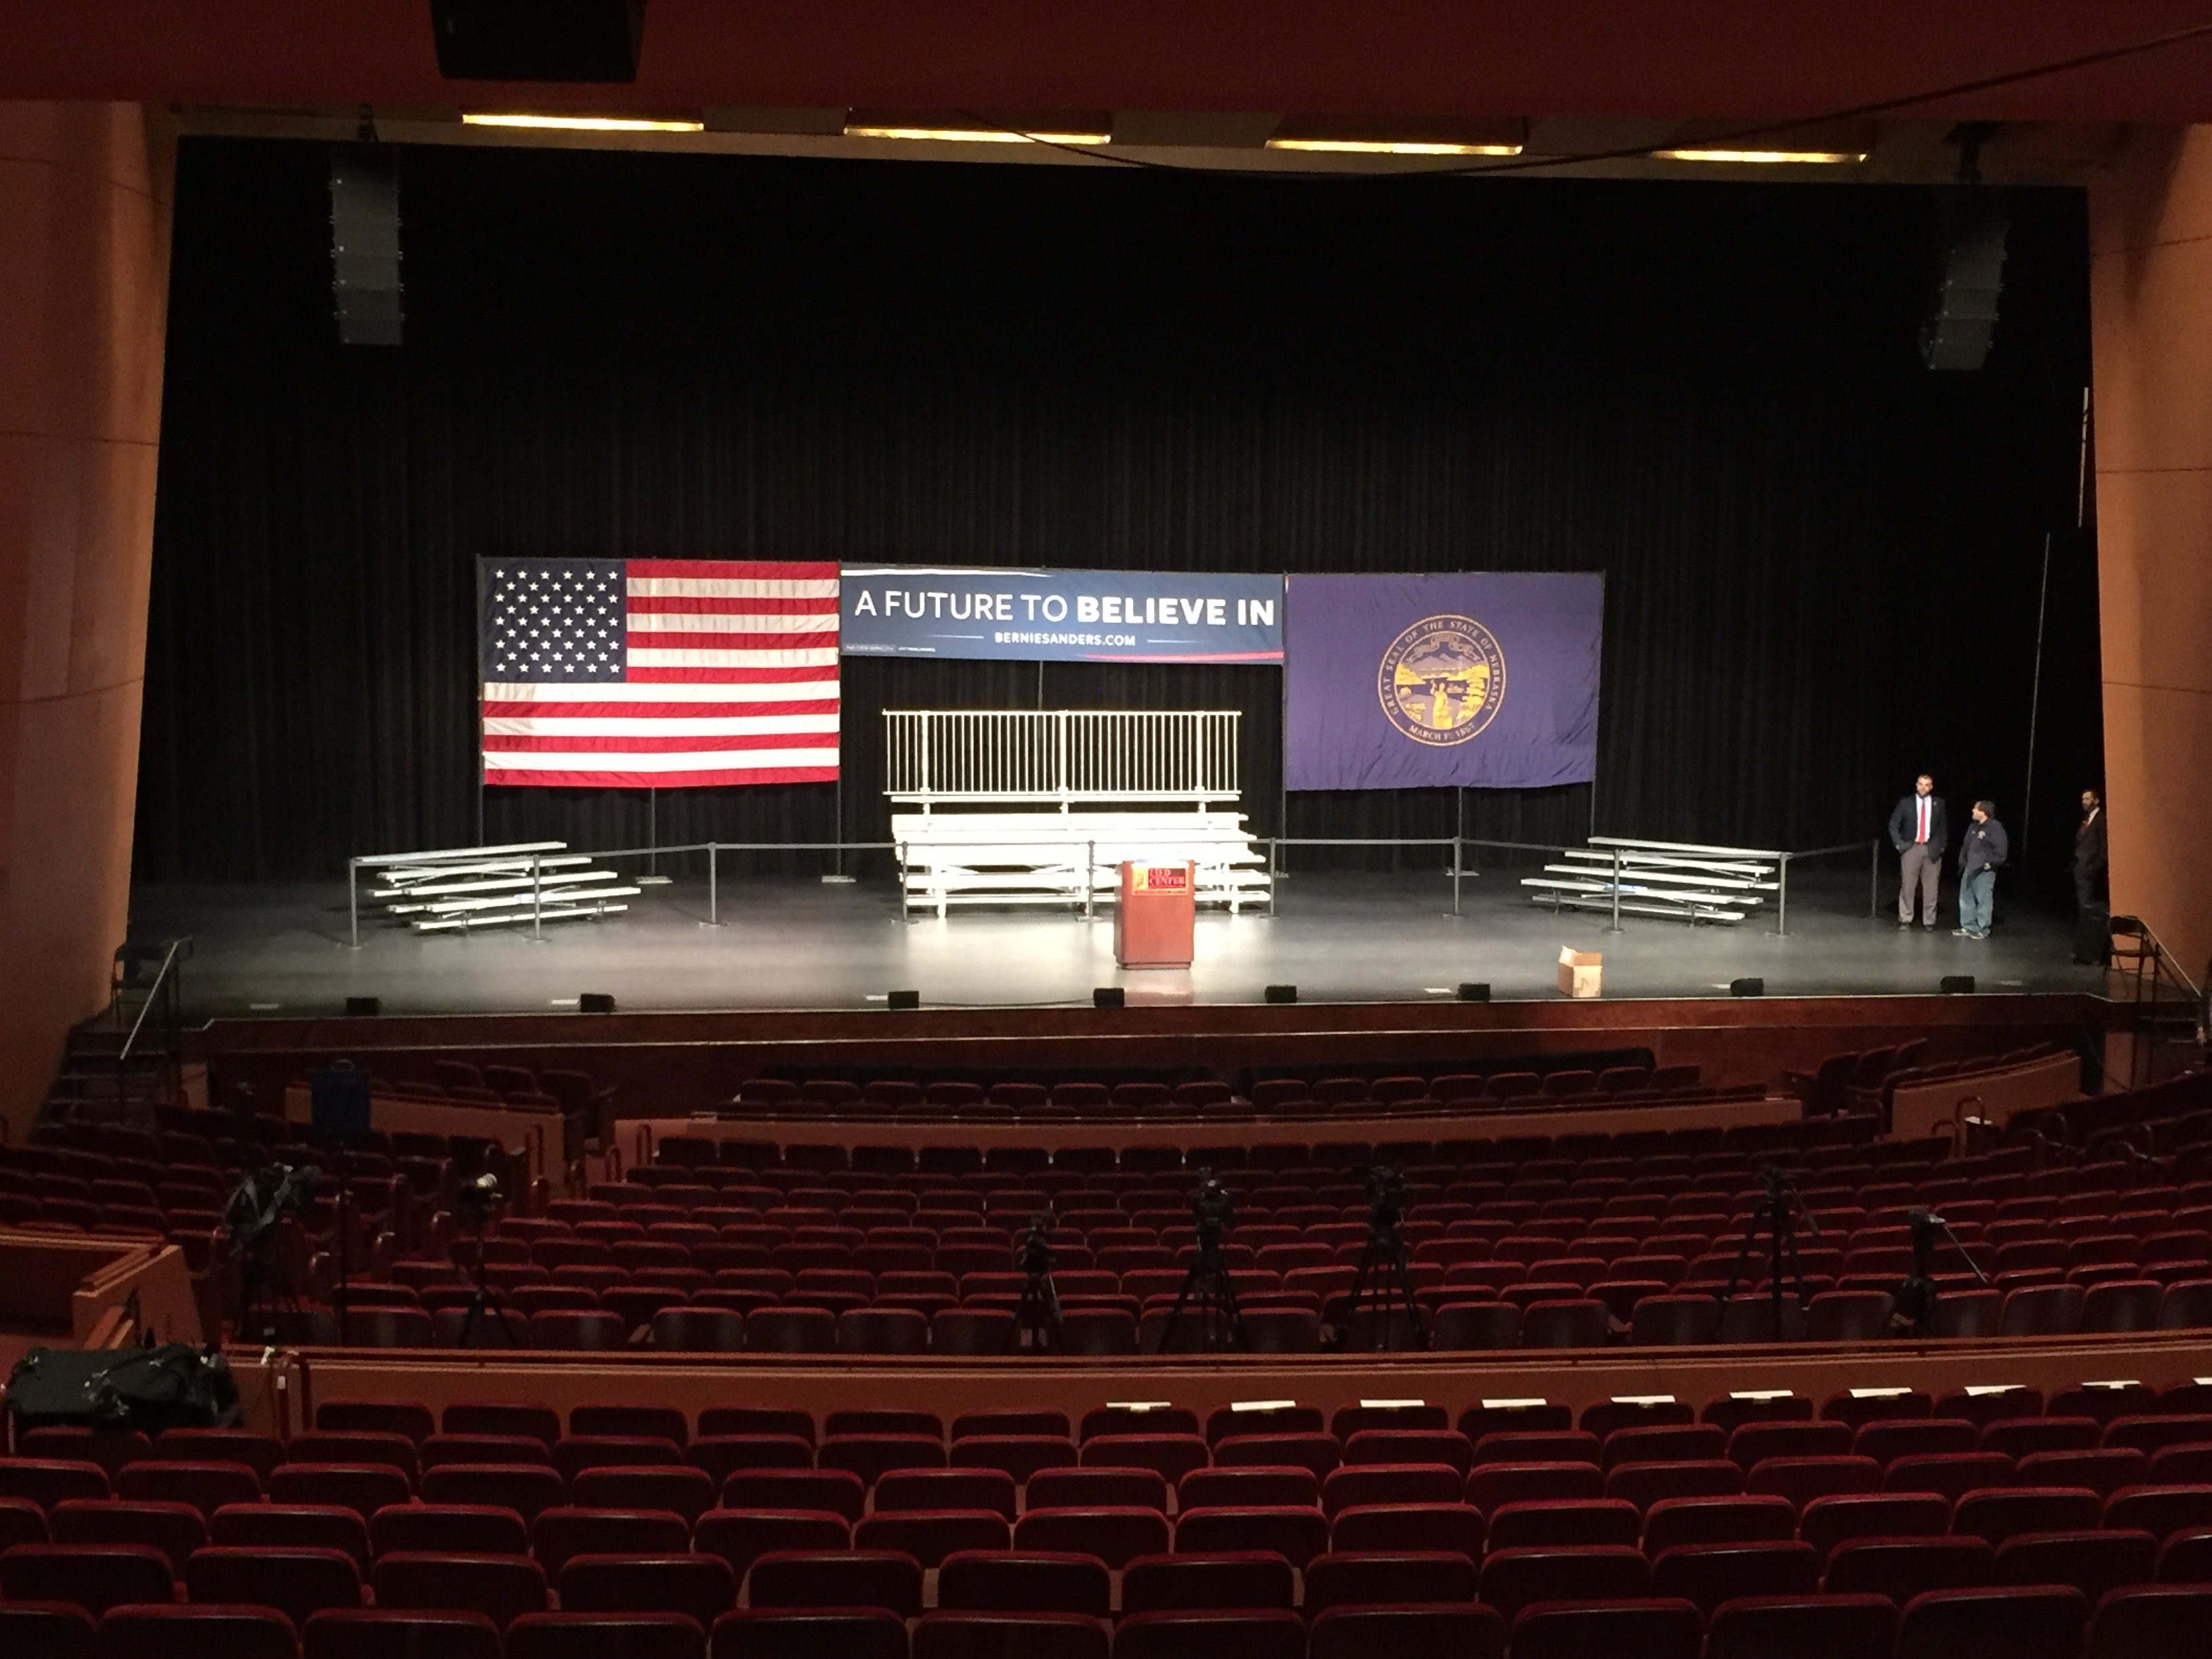 Last minute political event setup in Lincoln Nebraska for Bernie Sanders